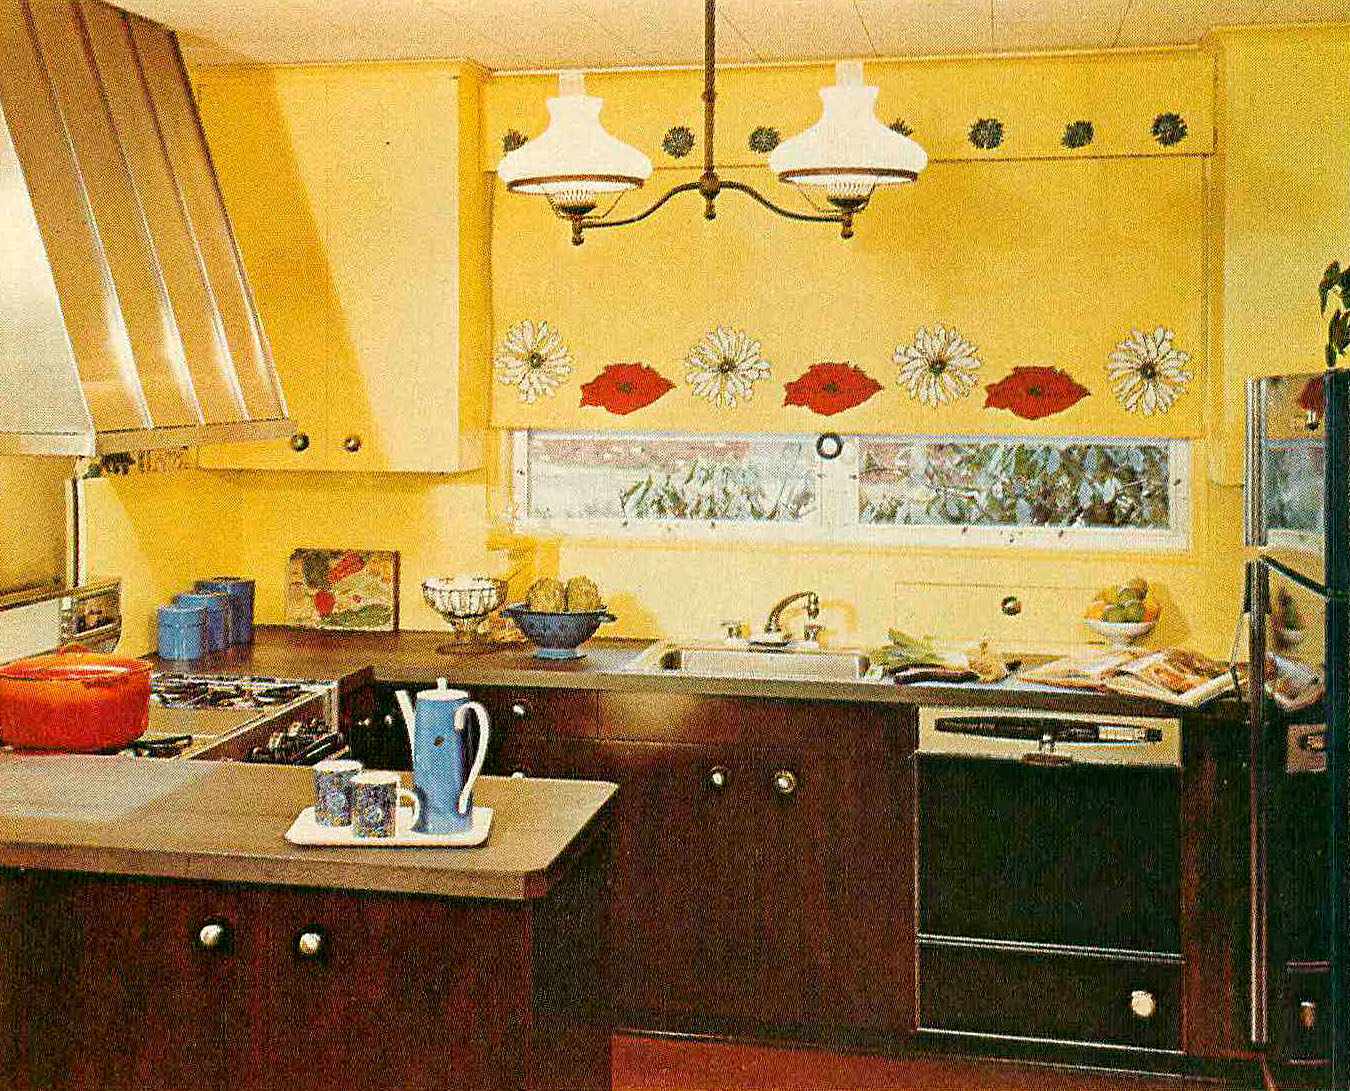 Pages from Homeowners How To Vol 03 No 6 Nov-Dec 1978 {a}-3_Page_2